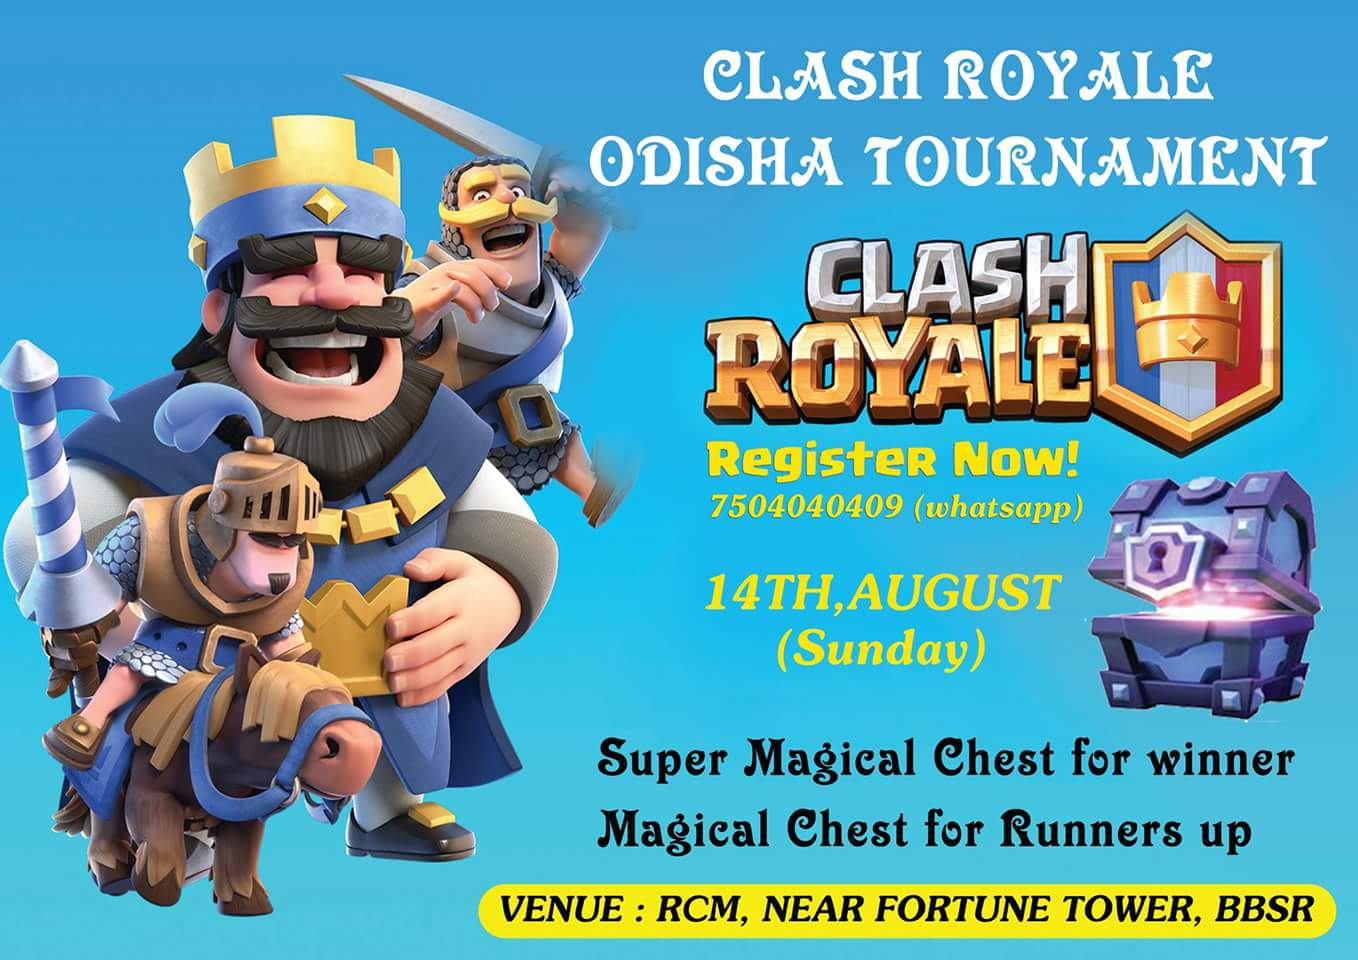 Clash royale tournament bhubaneswar buzz